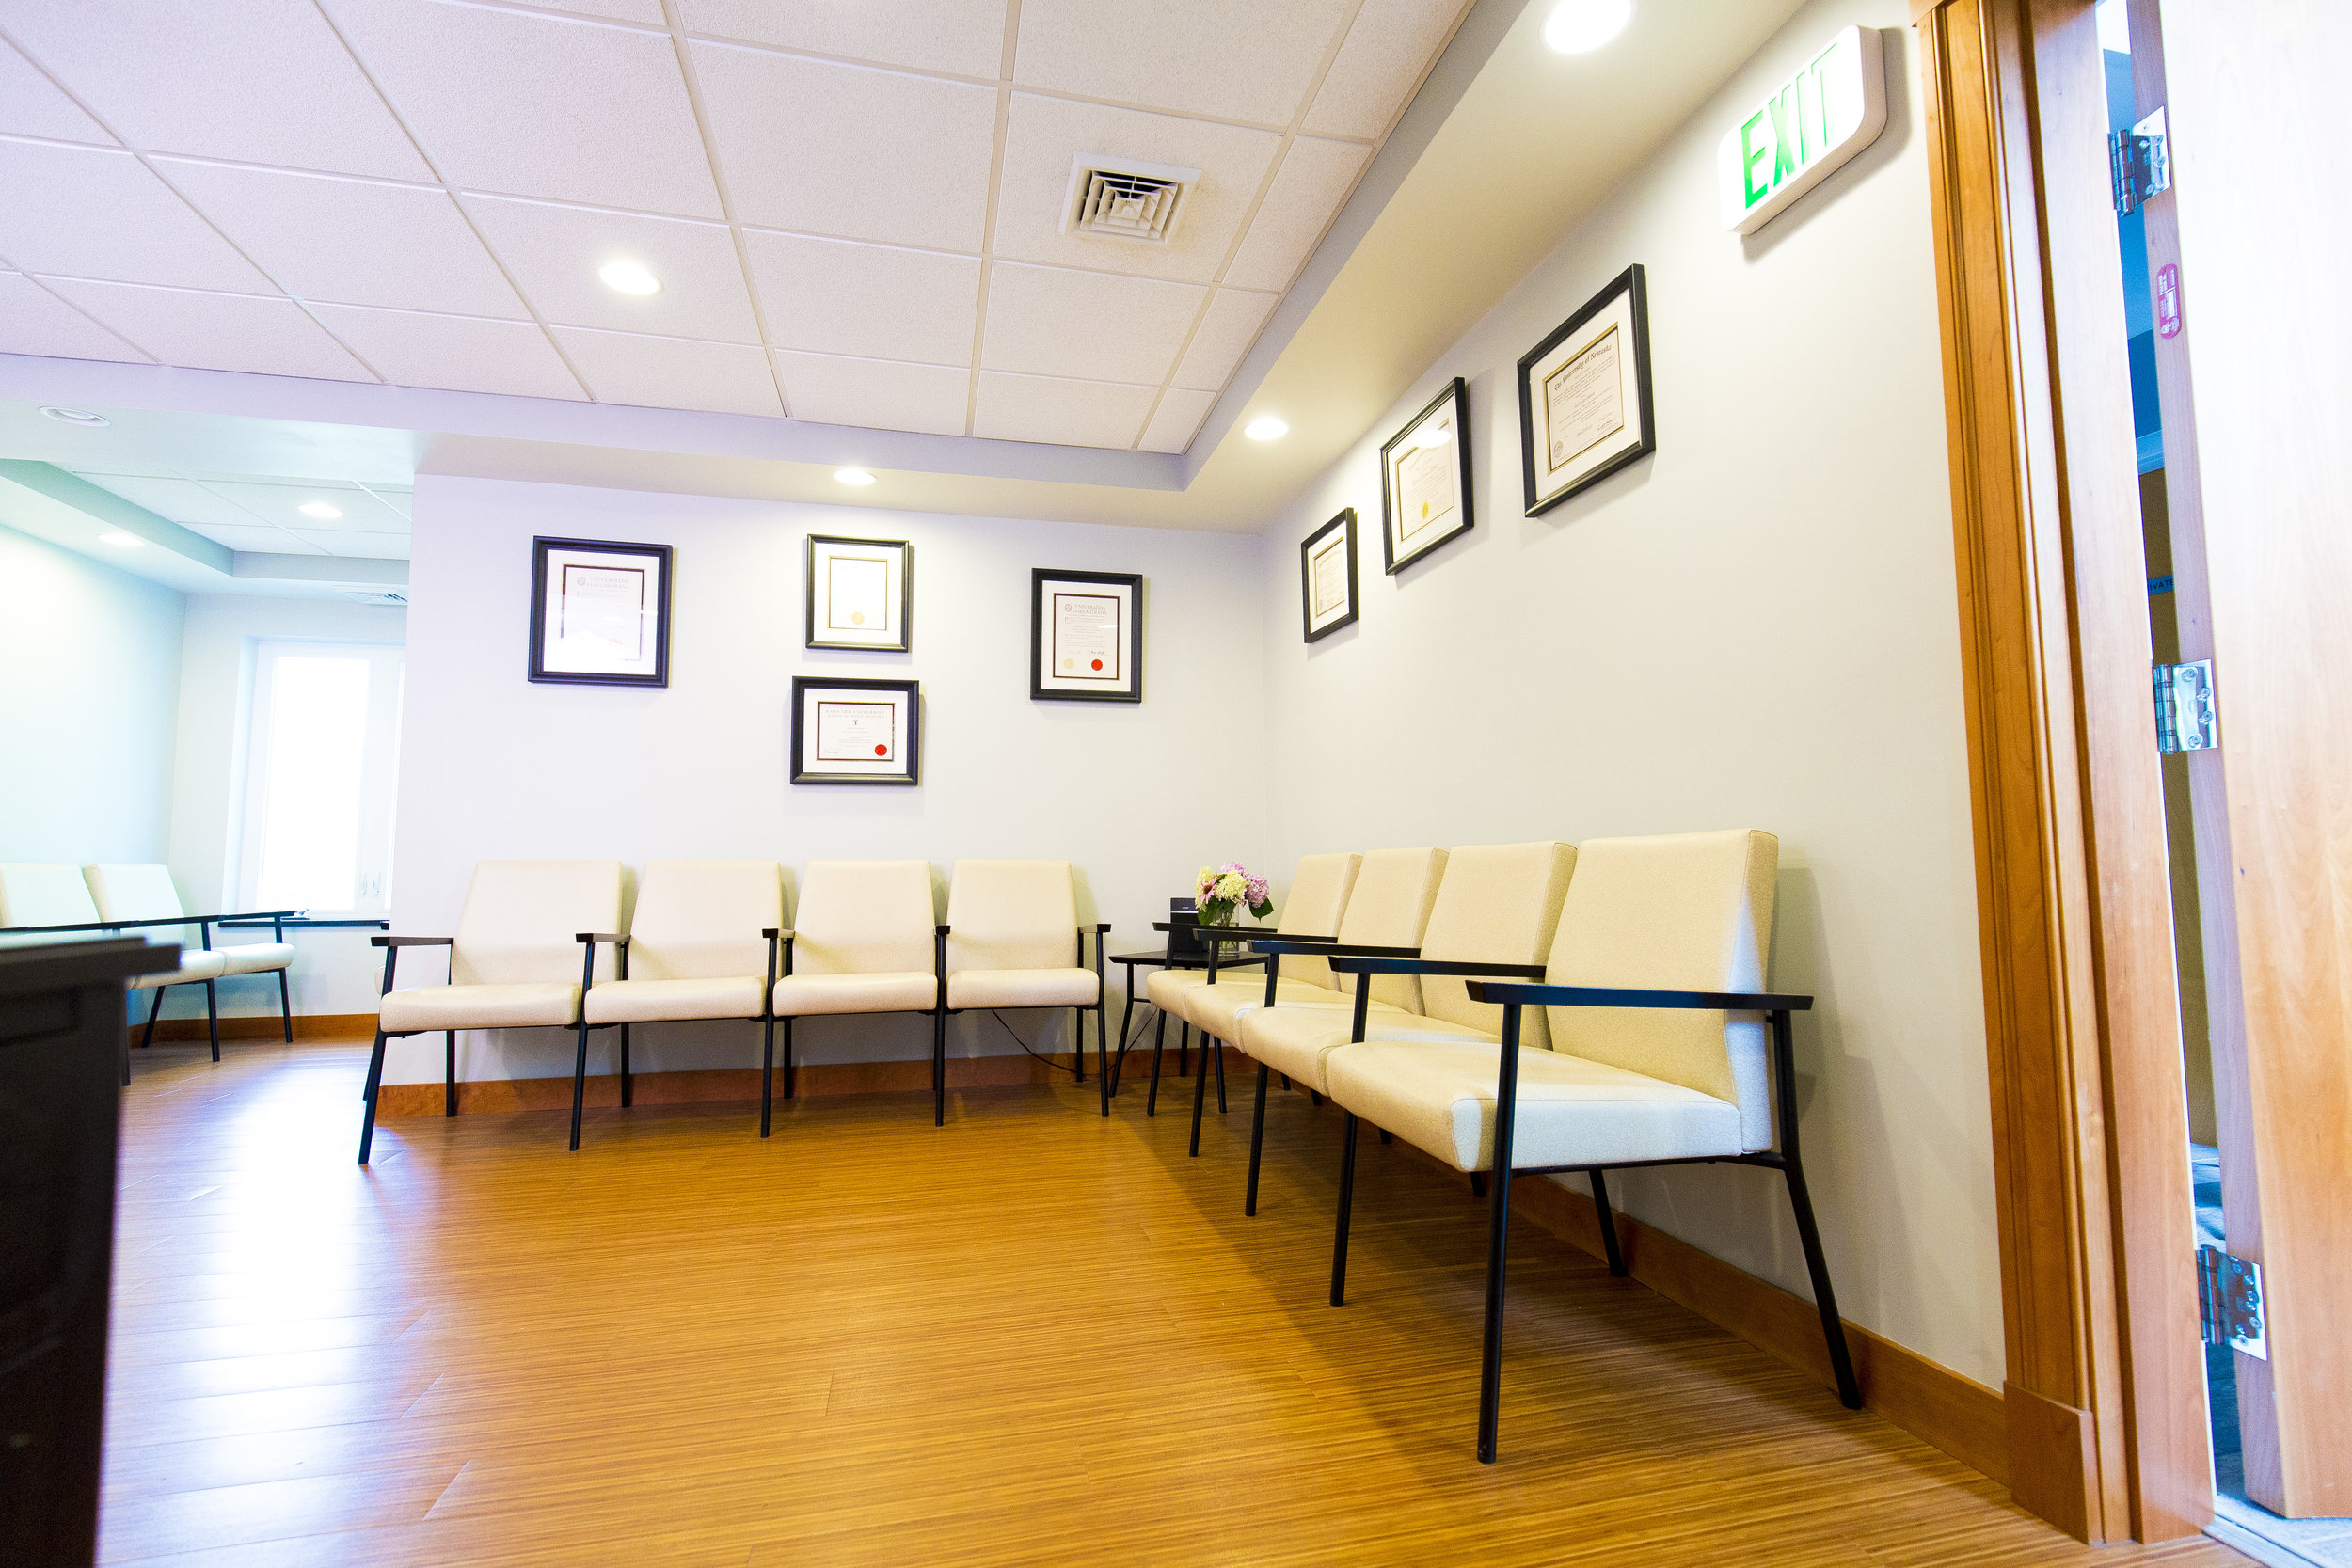 314A1763 Giovanni The Photographer-Boston Lorenz OrthodonticsCorporate Dental Dentist Orthodontics Headquarter  Lorenz Orthodontics.jpg